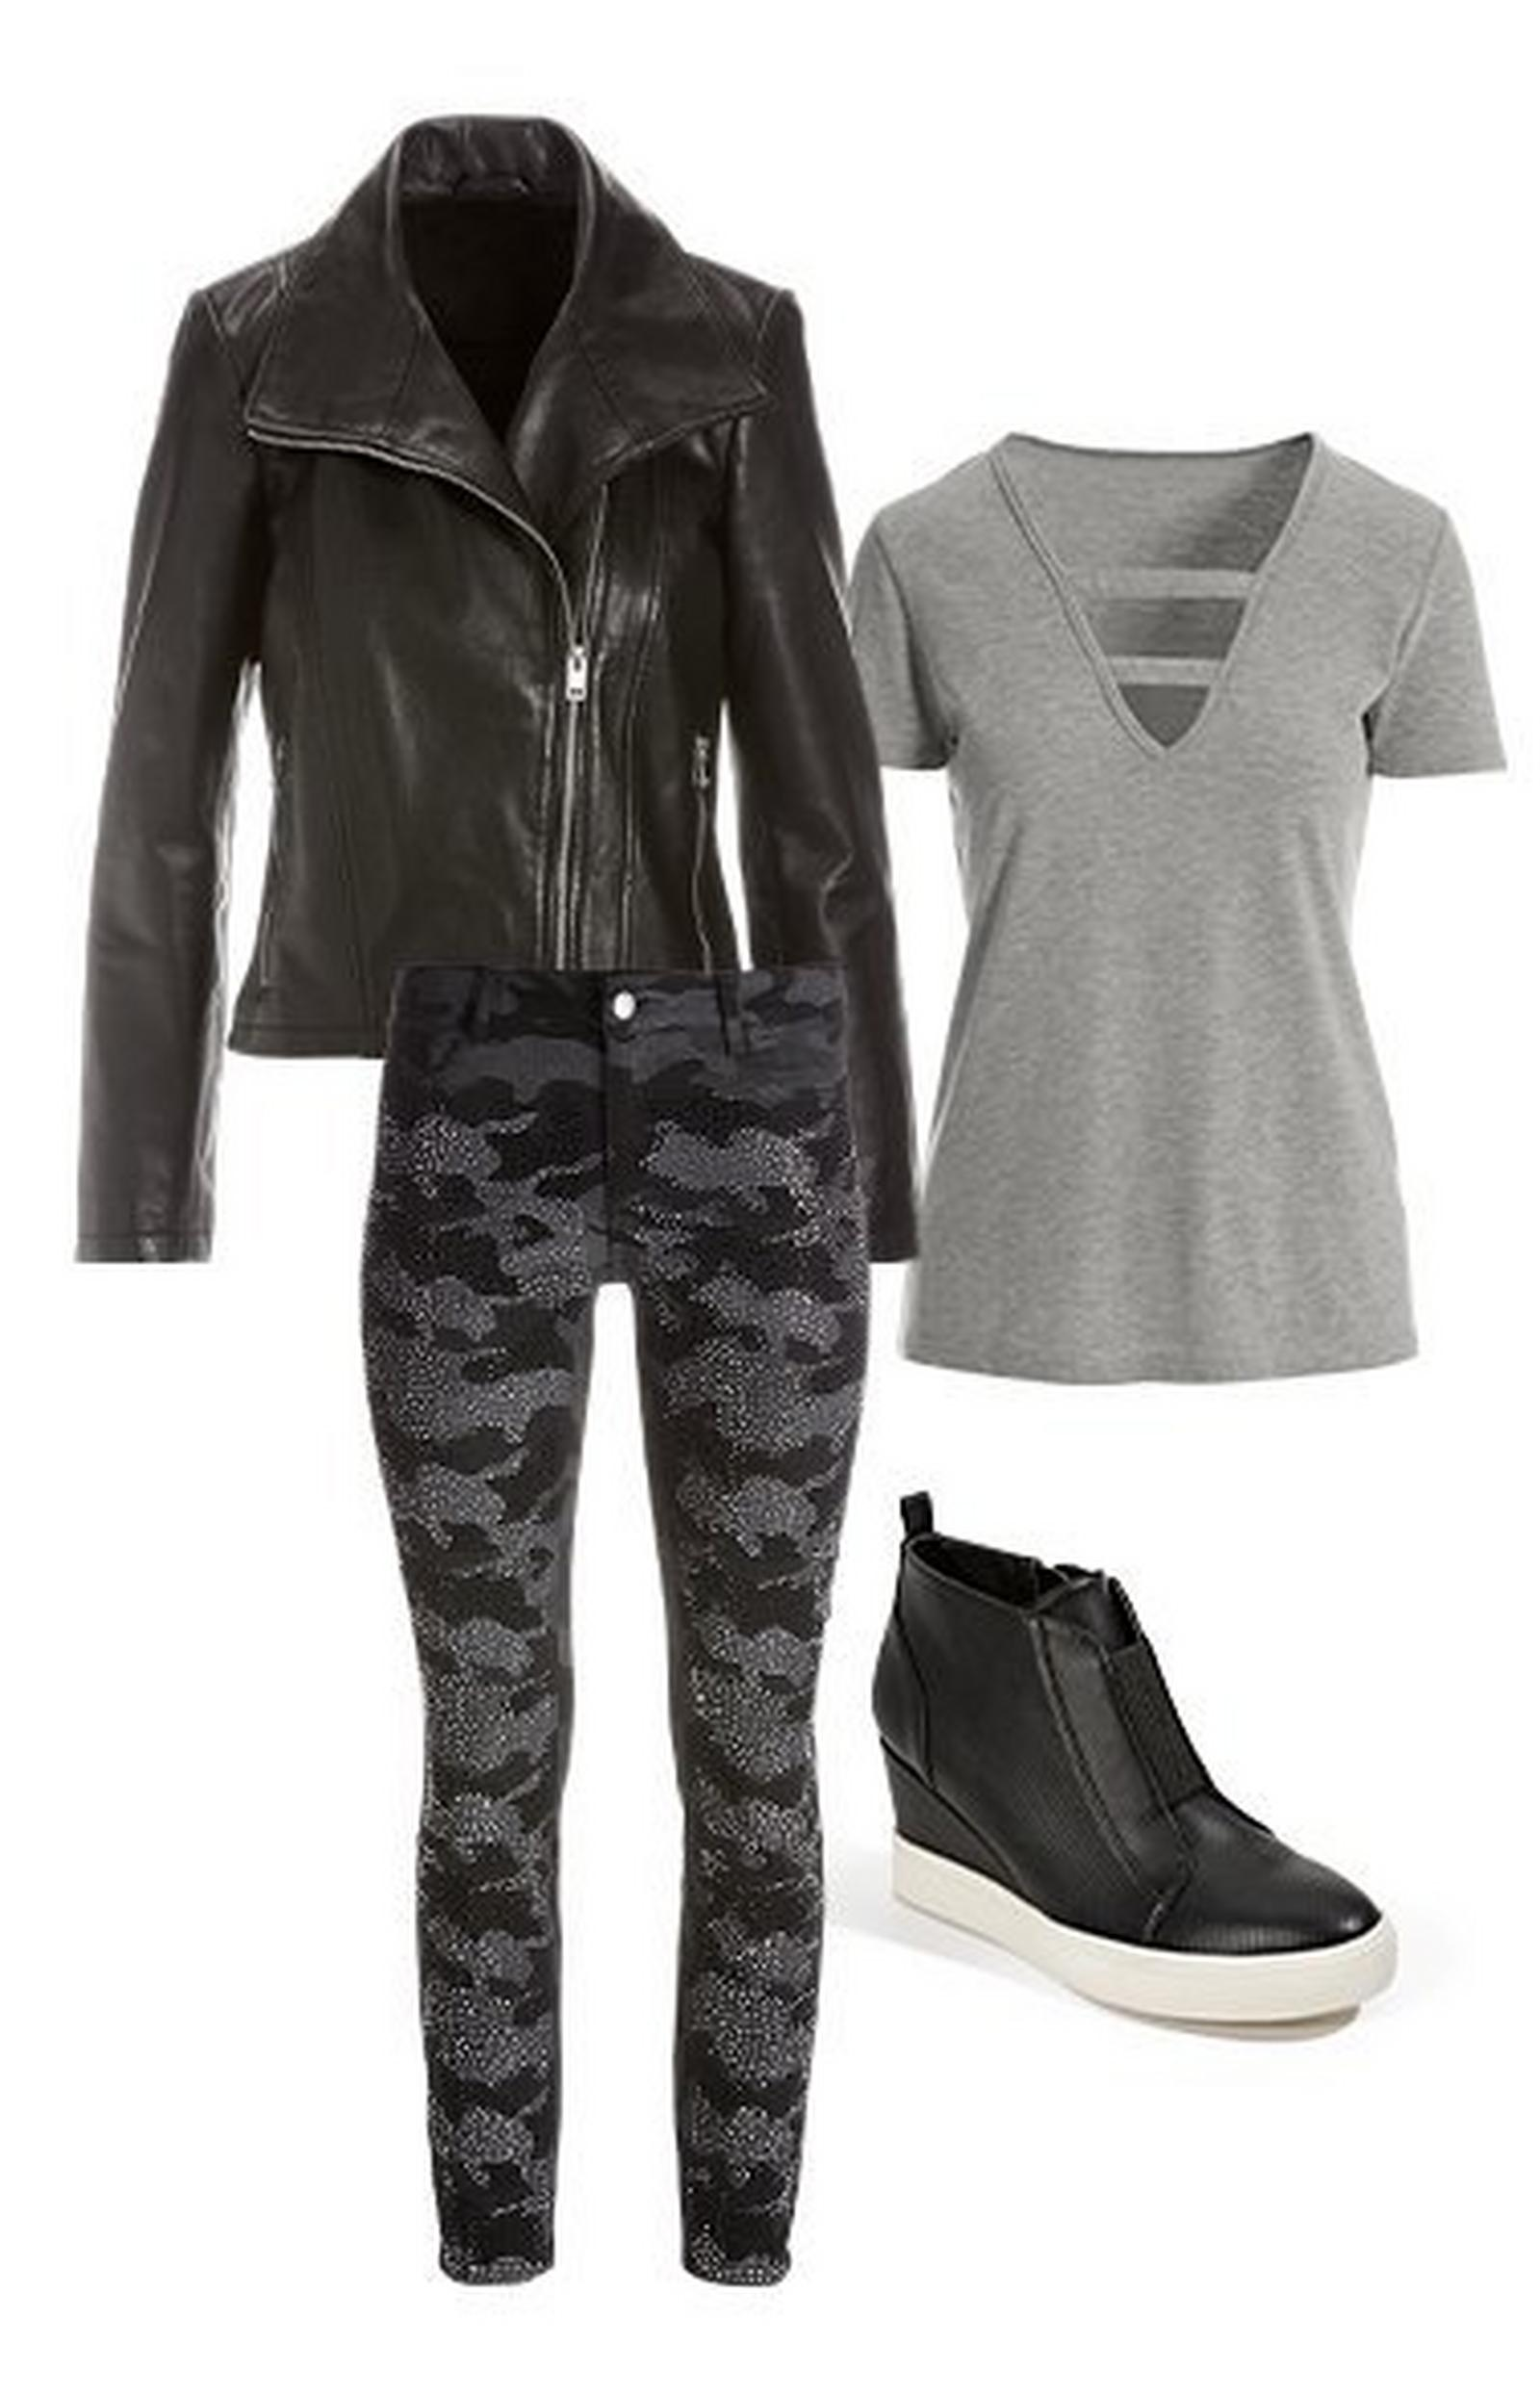 pullout images: black collared leather jacket, gray v-neck tee shirt, crystal embellished gray camo jeans, and black sneaker wedges.